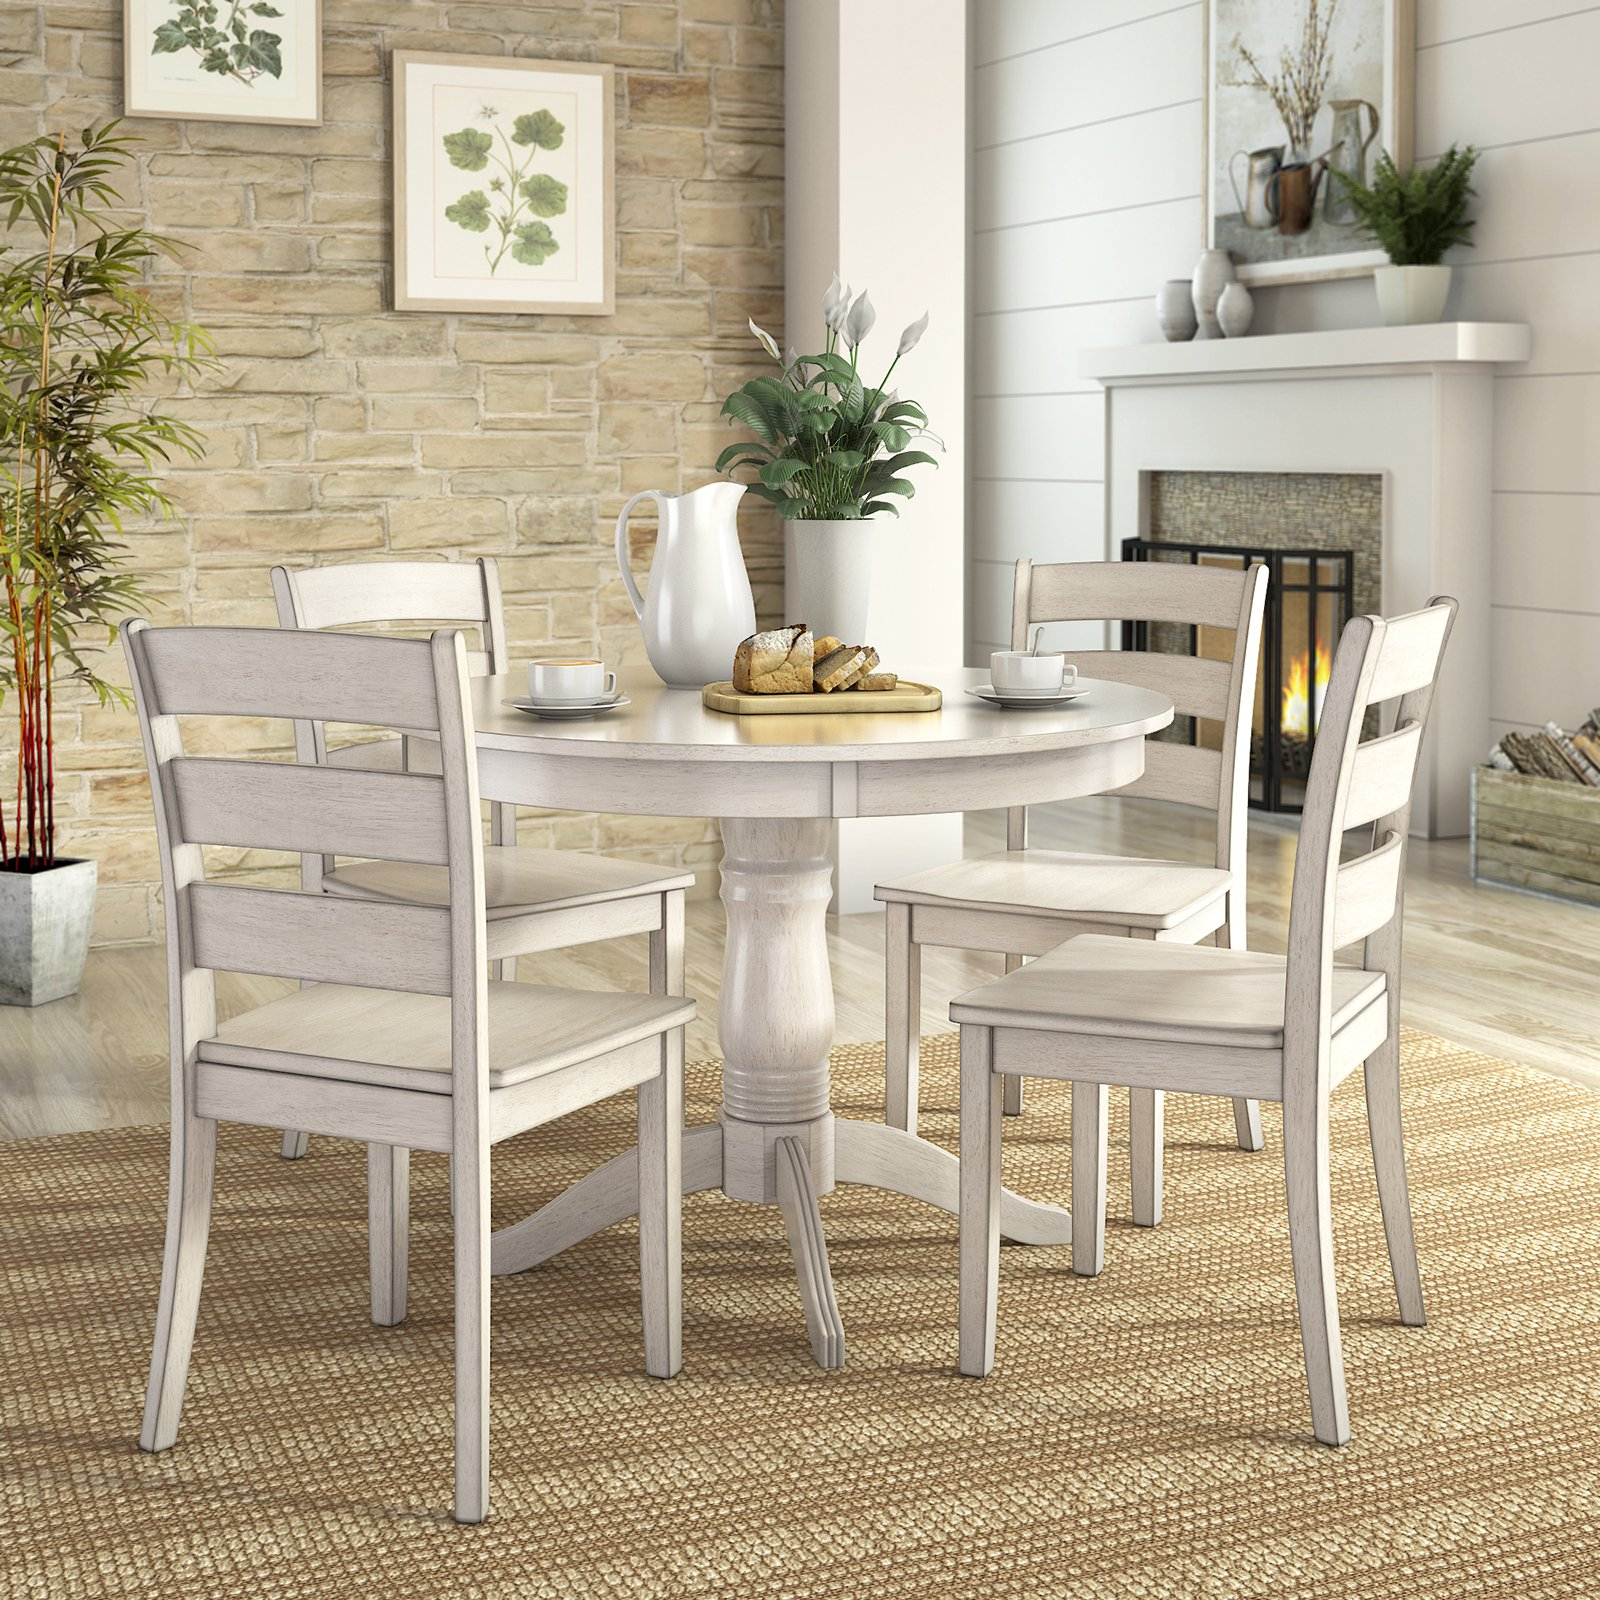 lexington dining chairs counter height chair 5 piece set with round table and 4 ladder back walmart com